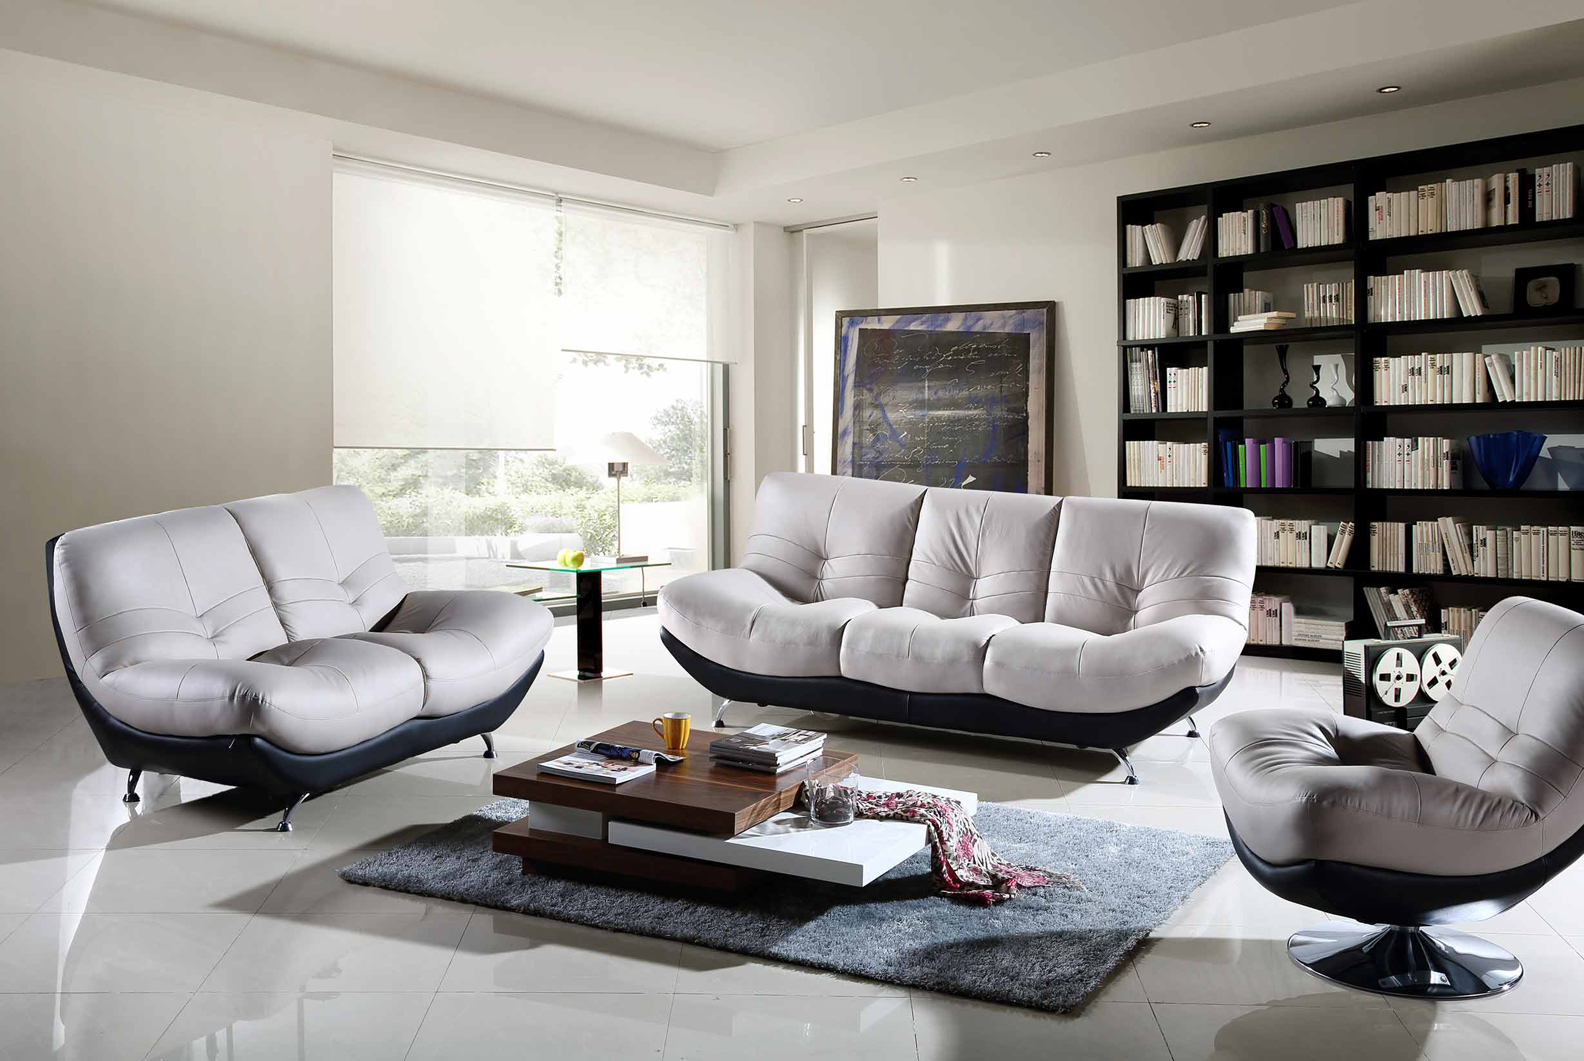 Contemporary Living Room with Sofas and a Charming White Minimalist Table